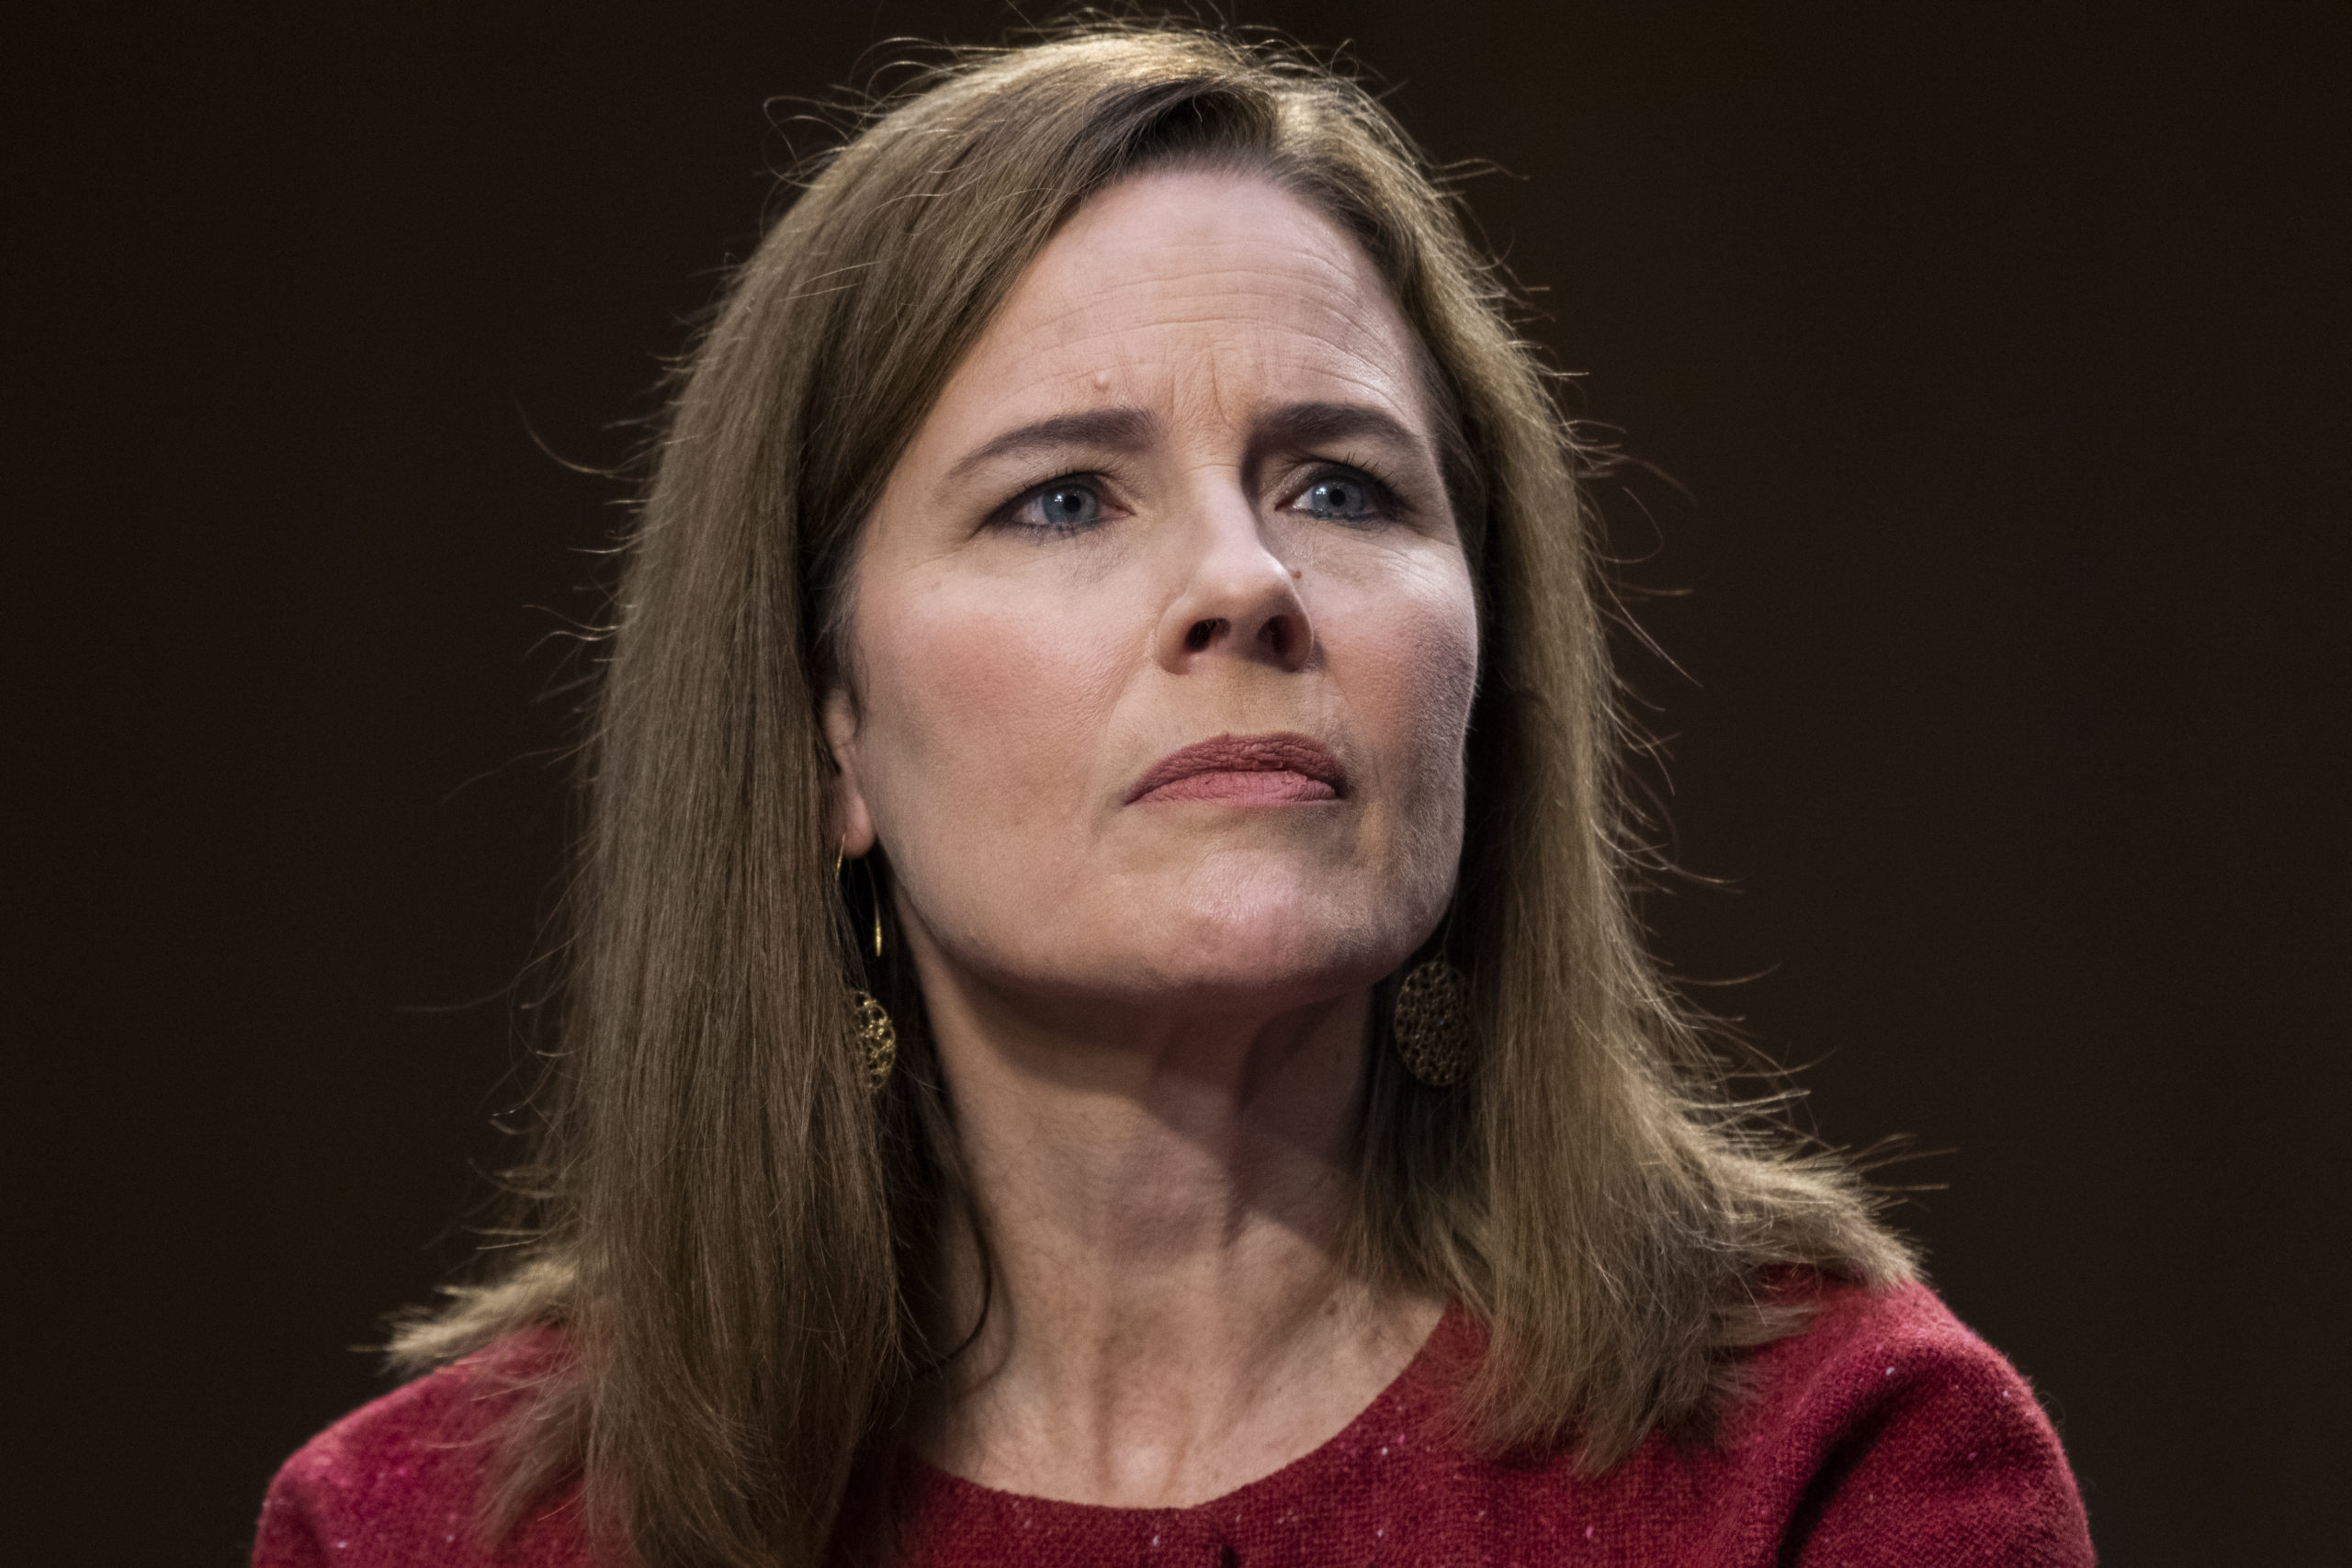 Supreme Court justice nominee Amy Coney Barrett testifies on the second day of her Senate Judiciary Committee confirmation hearing.